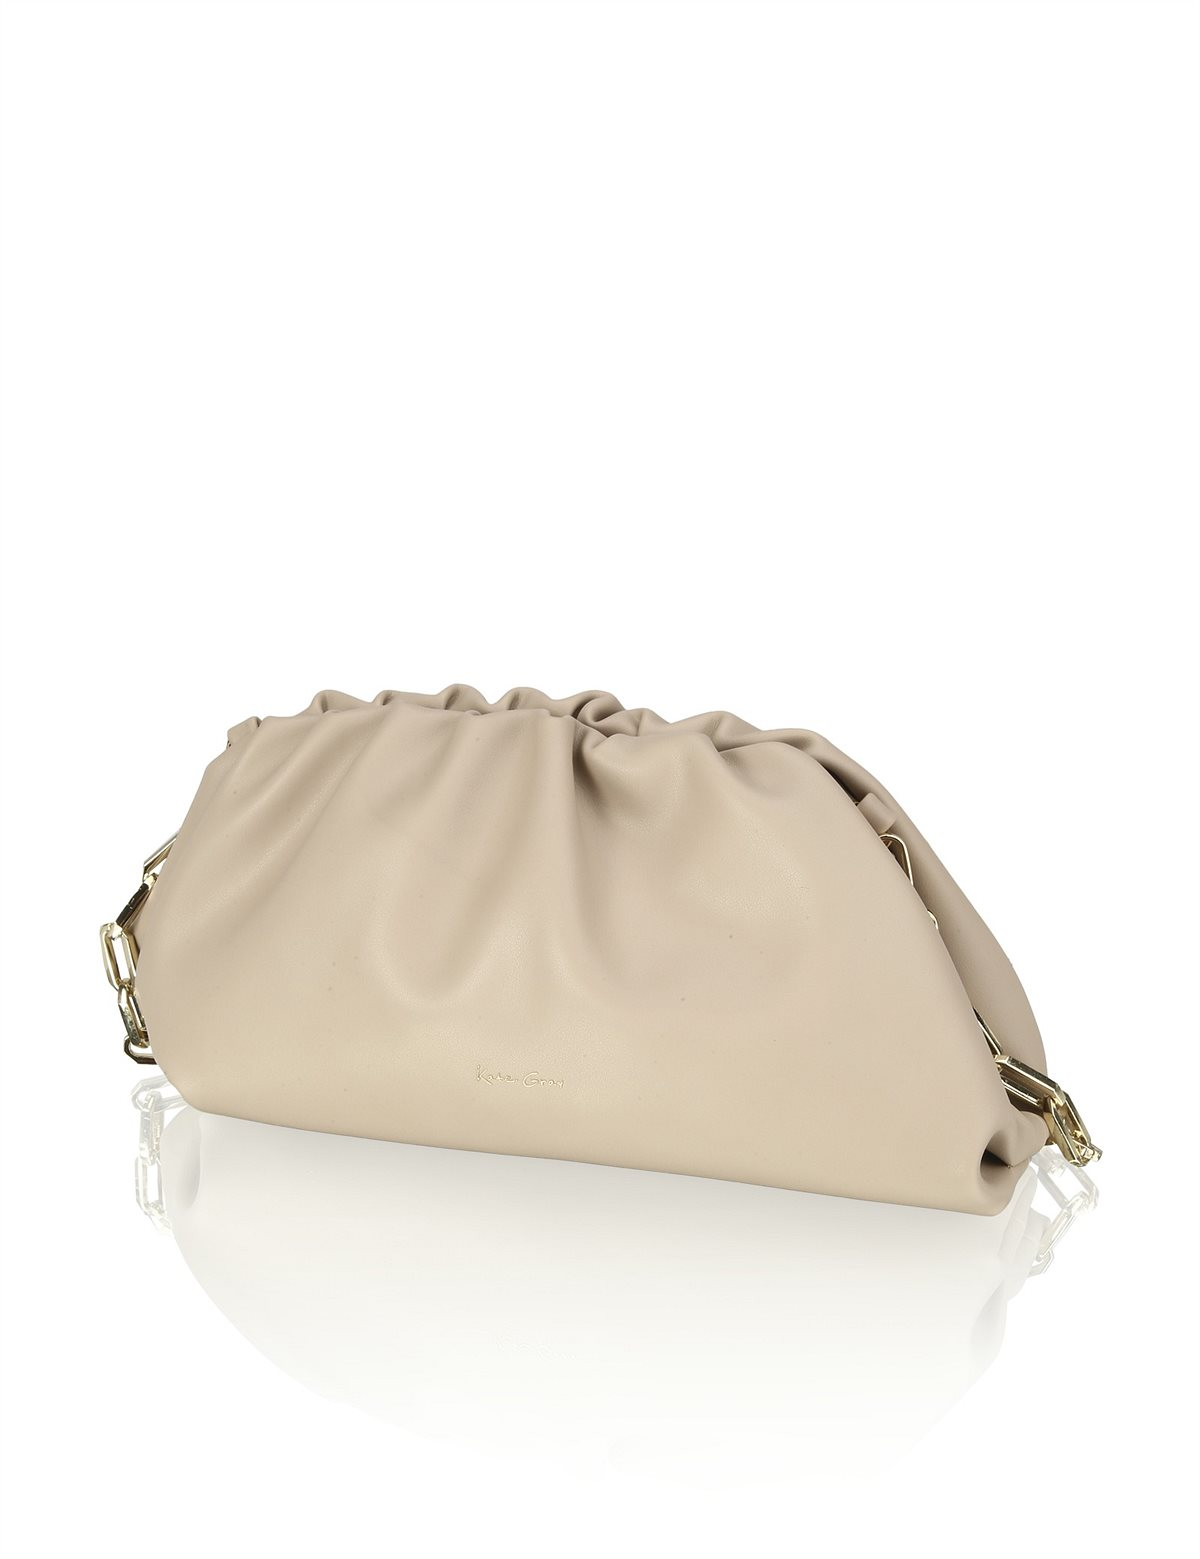 HUMANIC 03 Kate Gray Soft Shoulder Bag EUR 49,95 ab Mitte August 6131002436